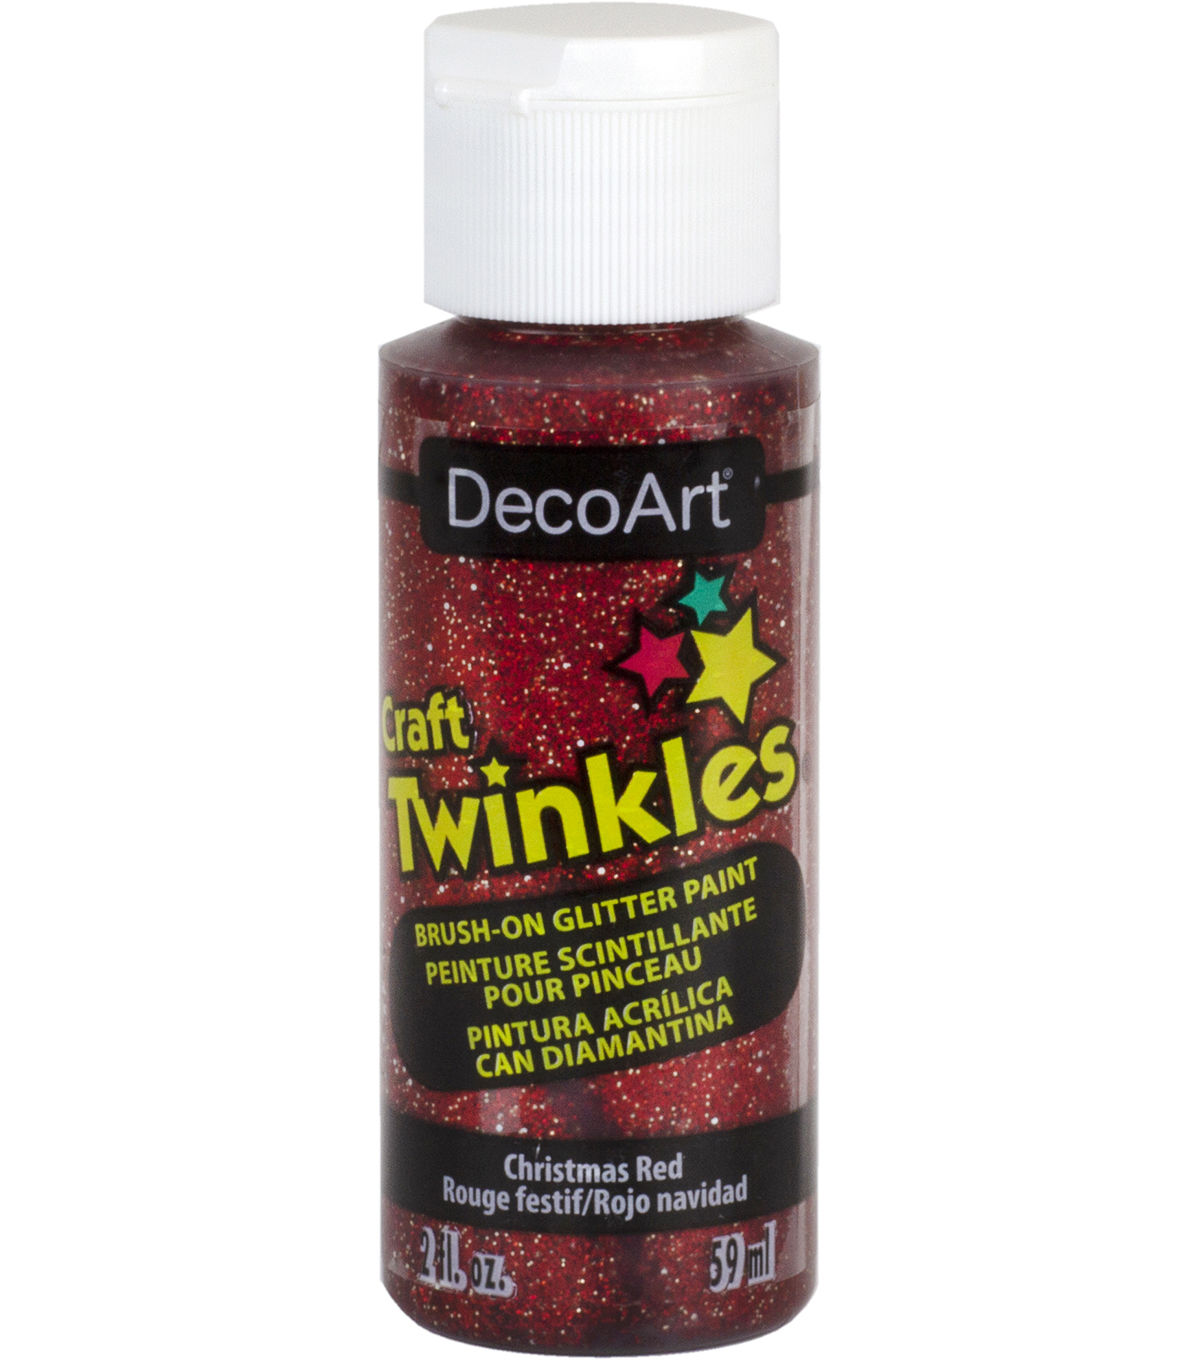 DecoArt Craft Twinkles 2 fl. oz. Brush-on Glitter Paint-Christmas Red